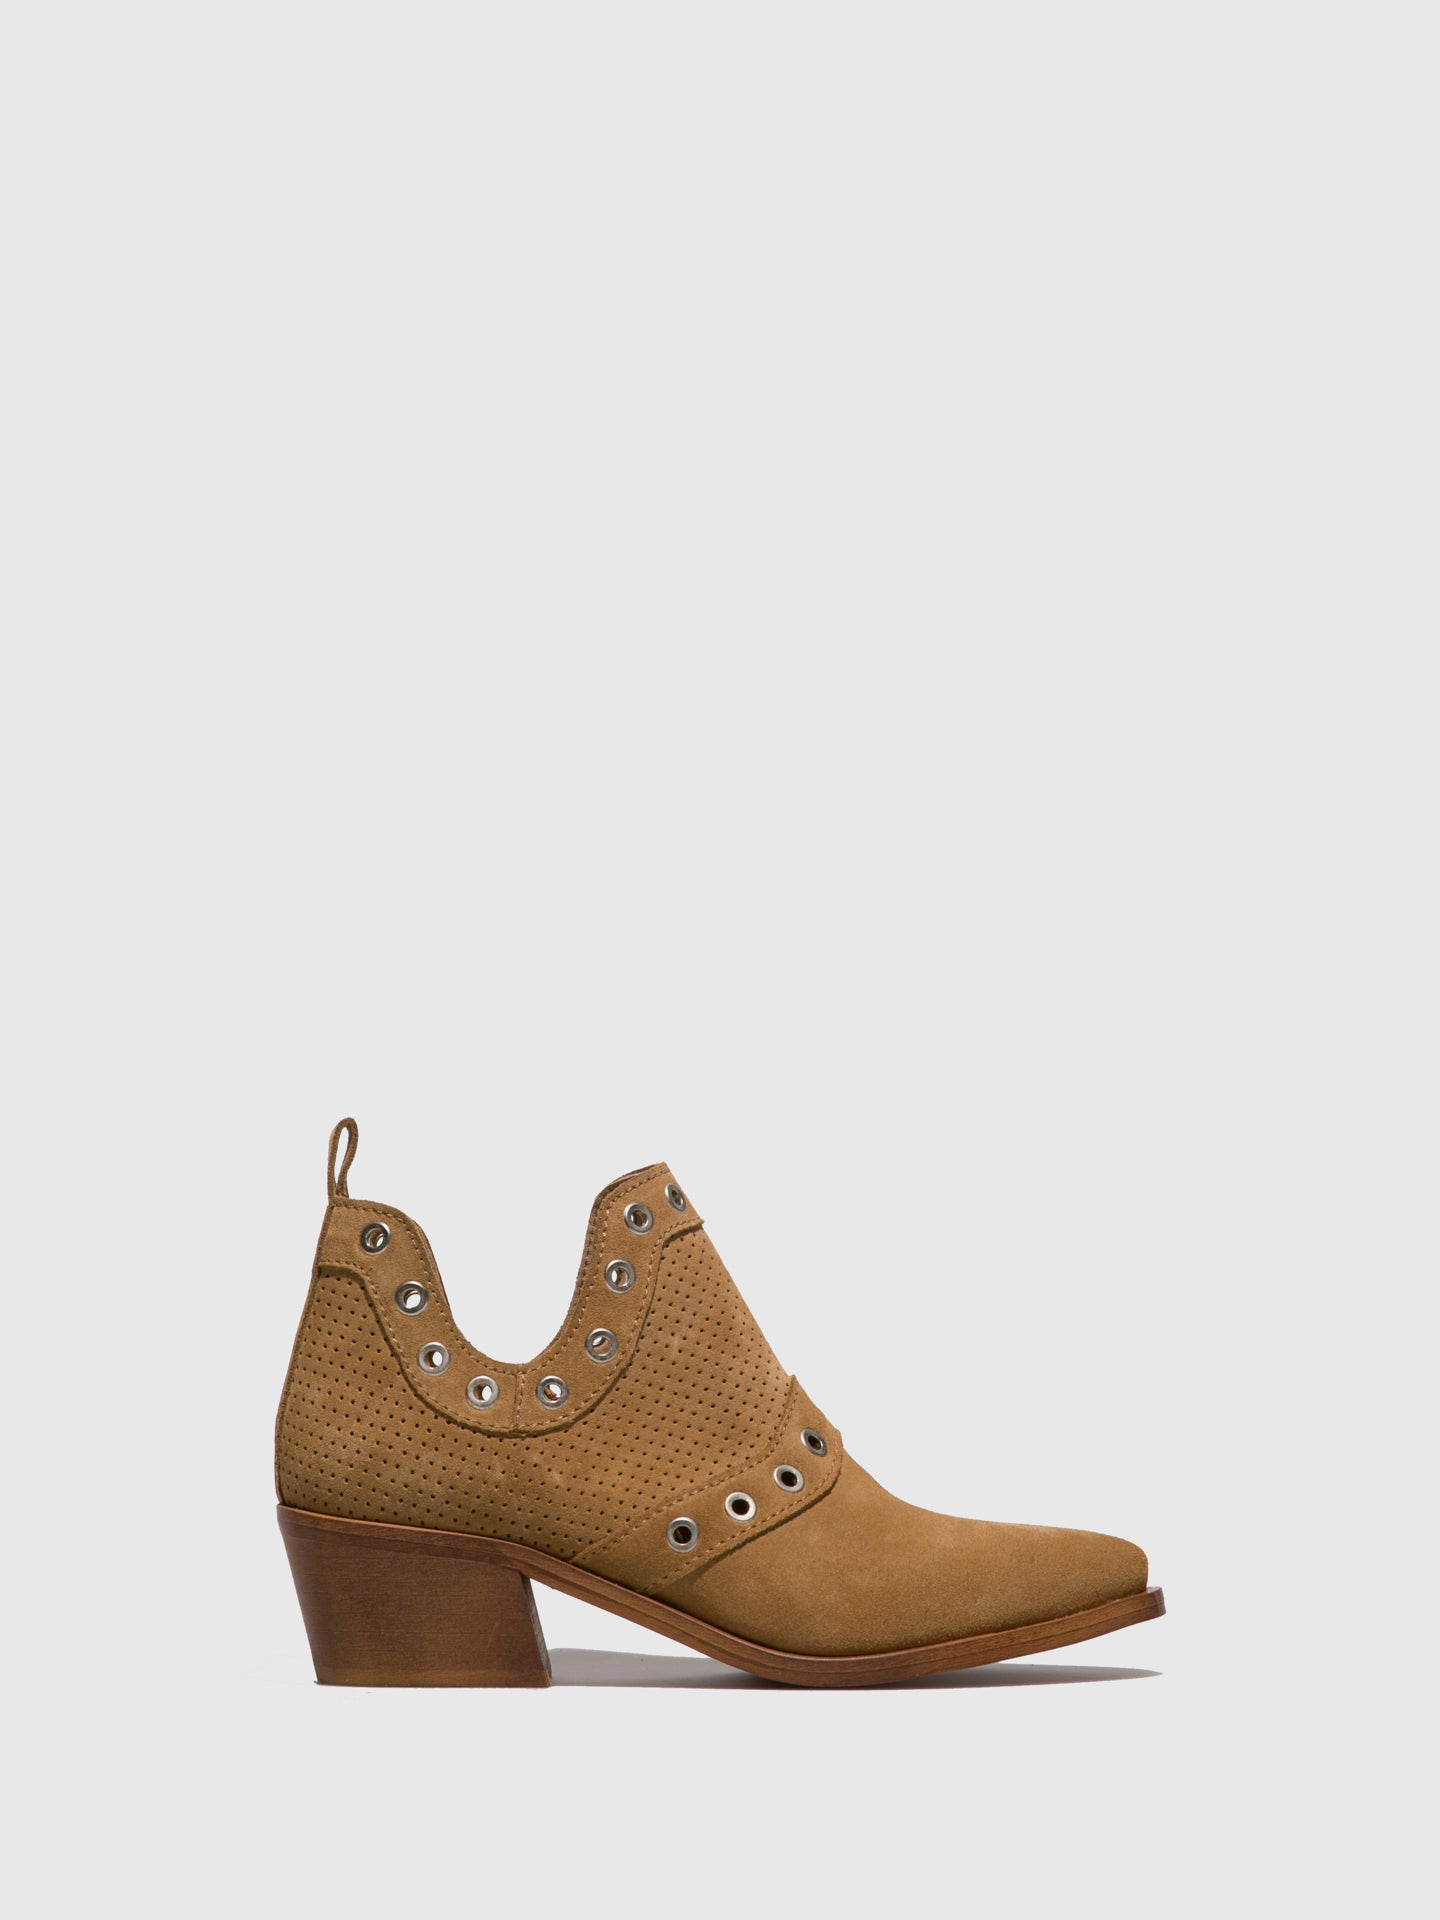 Foreva Peru Cowboy Ankle Boots